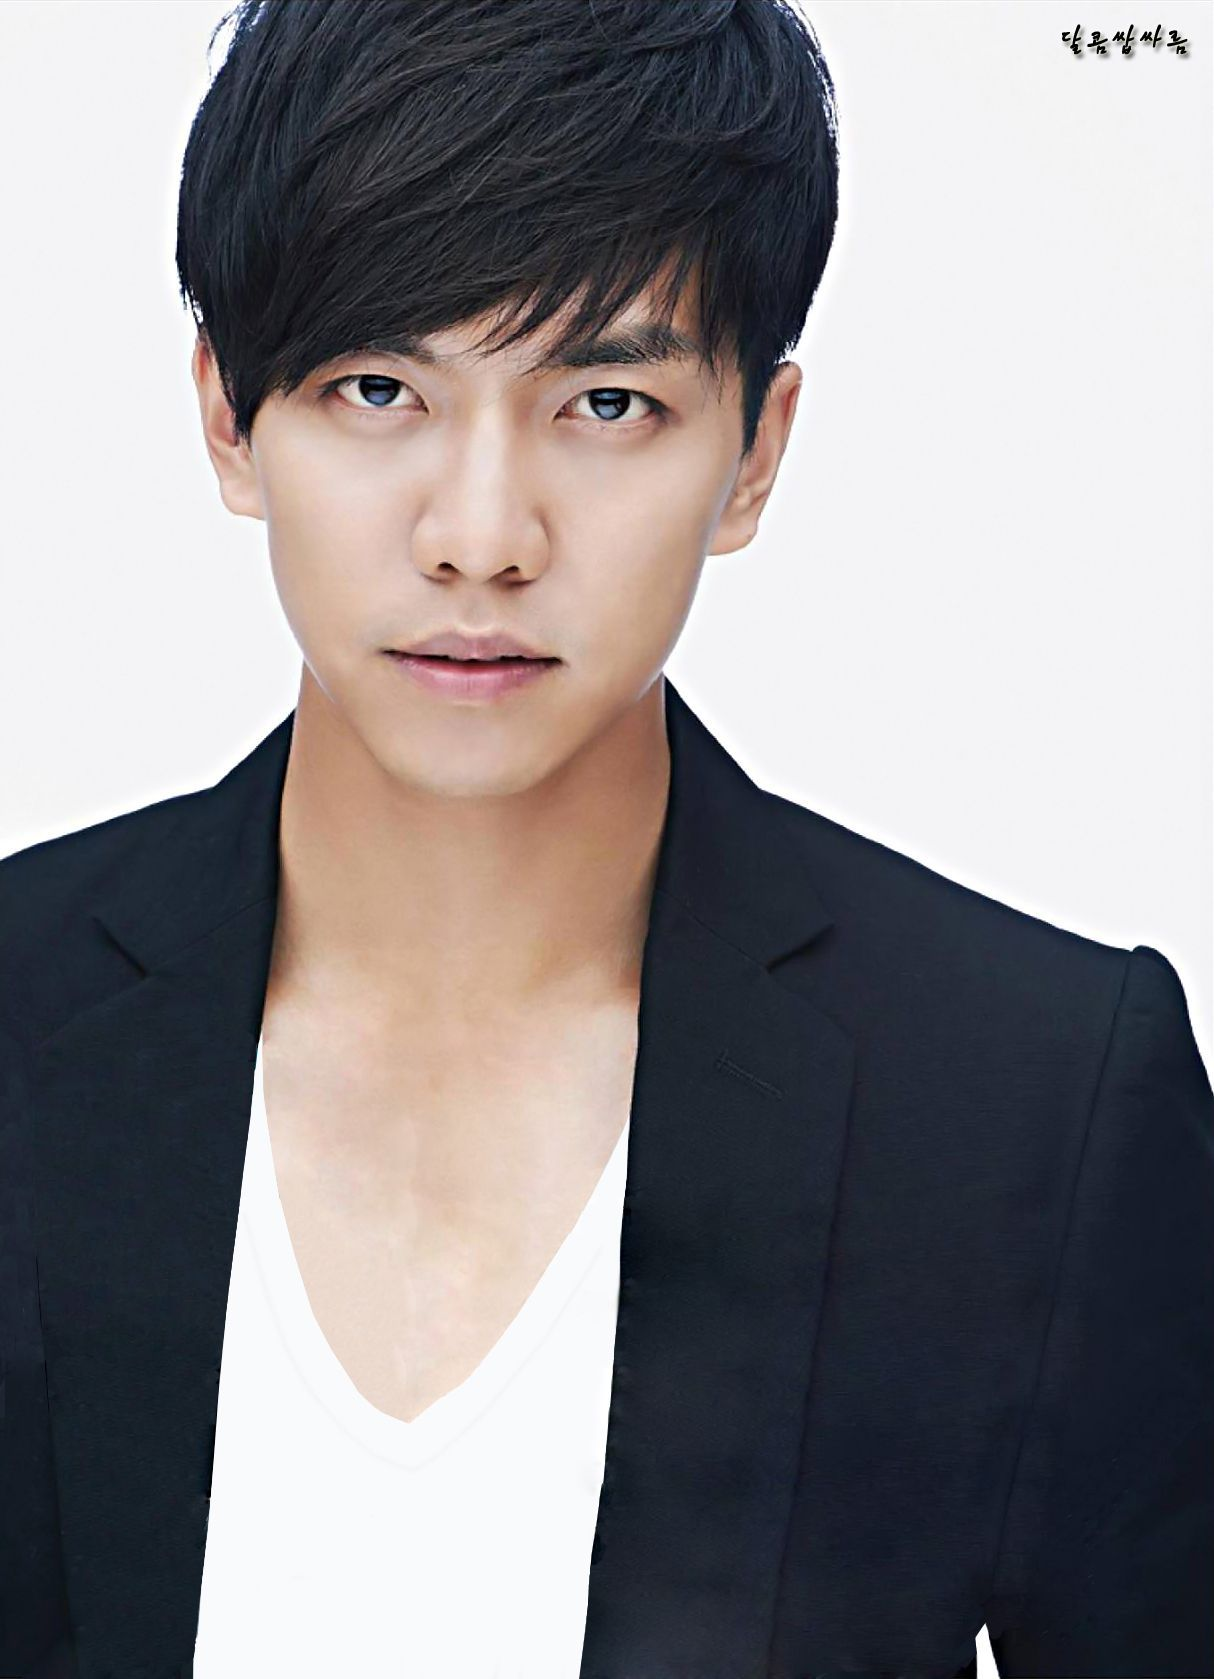 lee seung gi dating Lee seung-gi (이승기), lee seung-ki, korean actor singer , male, 1987/01/13, find lee seung-gi (이승기) filmography, dramas, movies, films, pictures, latest news, community, forums, fan messages, dvds, shopping.